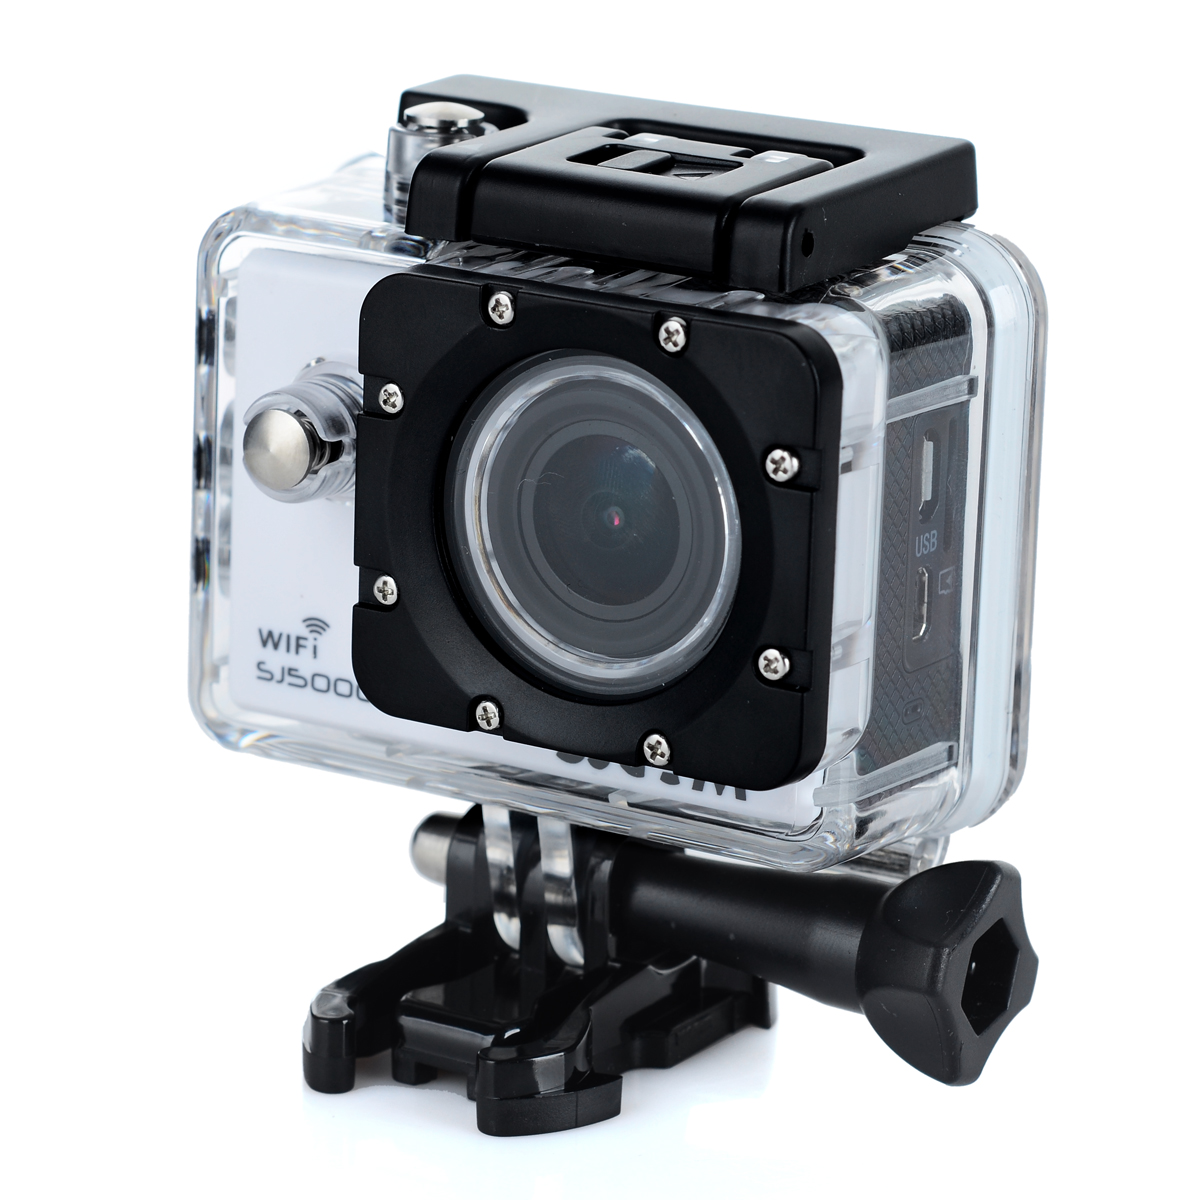 Original SJCAM SJ5000 Plus 16MP WiFi Action HD Camera Ambarella A7LS75 Waterproof White